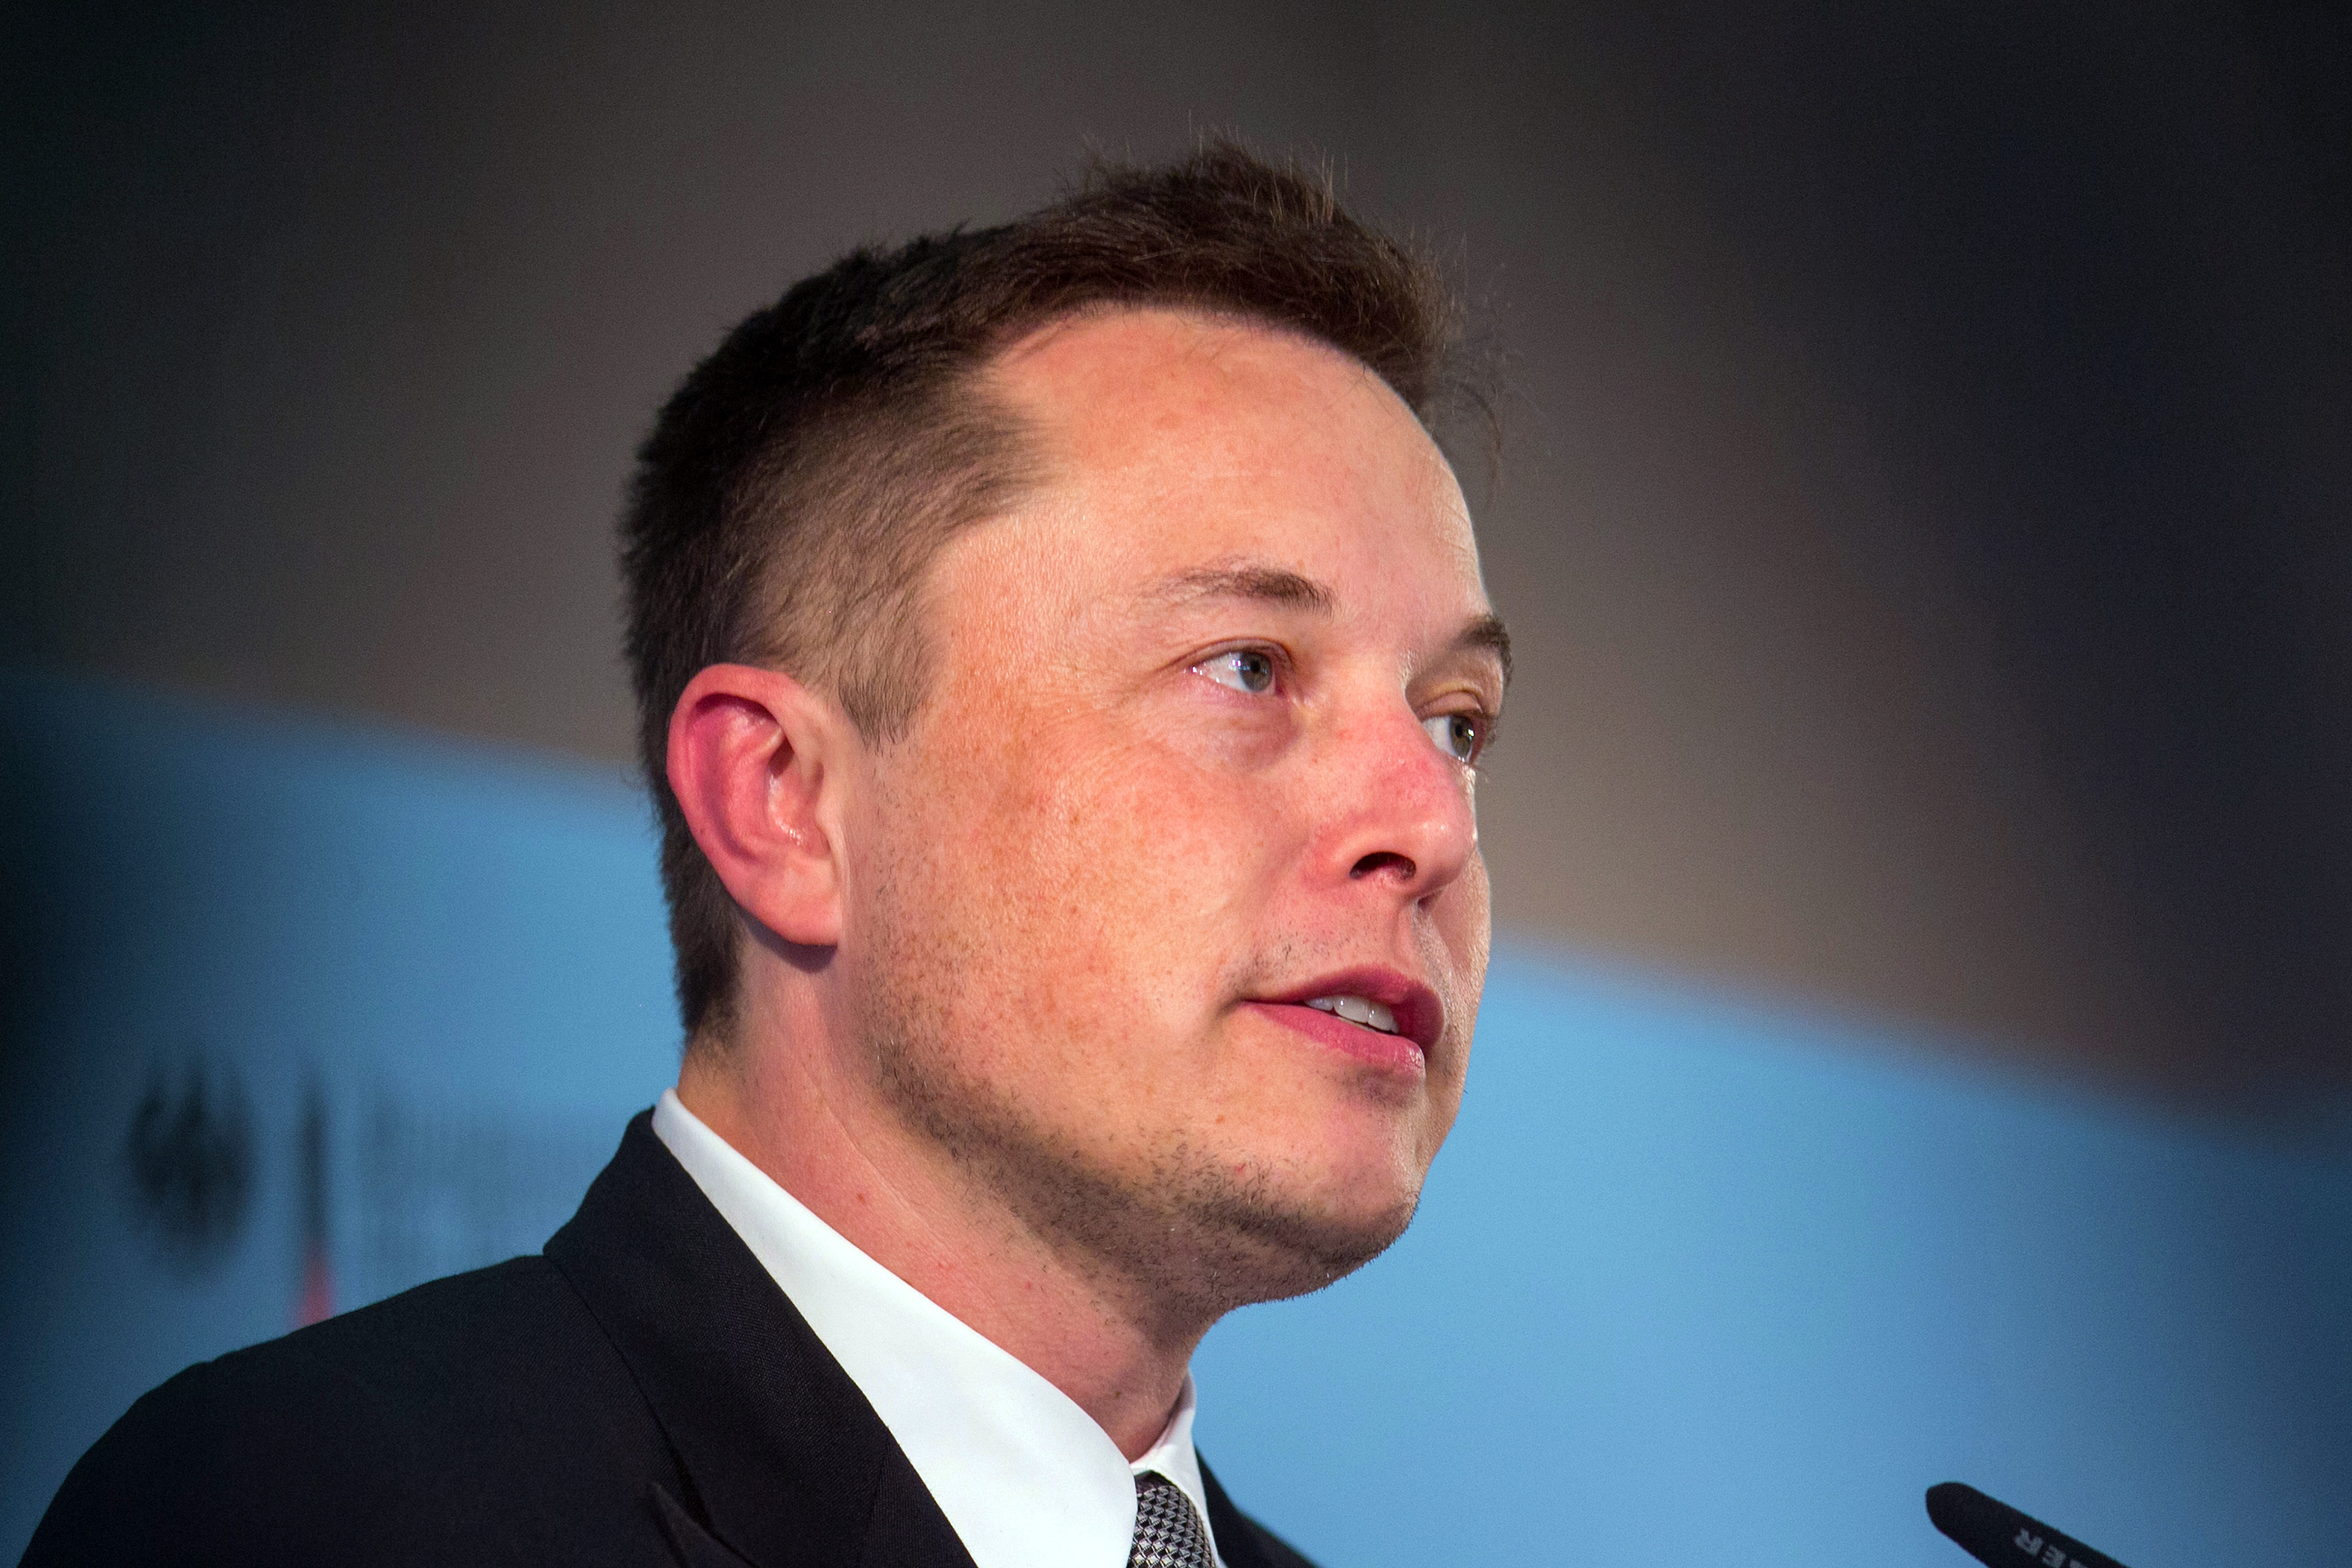 Elon Musk at a news conference in Berlin on Sept. 24, 2015.